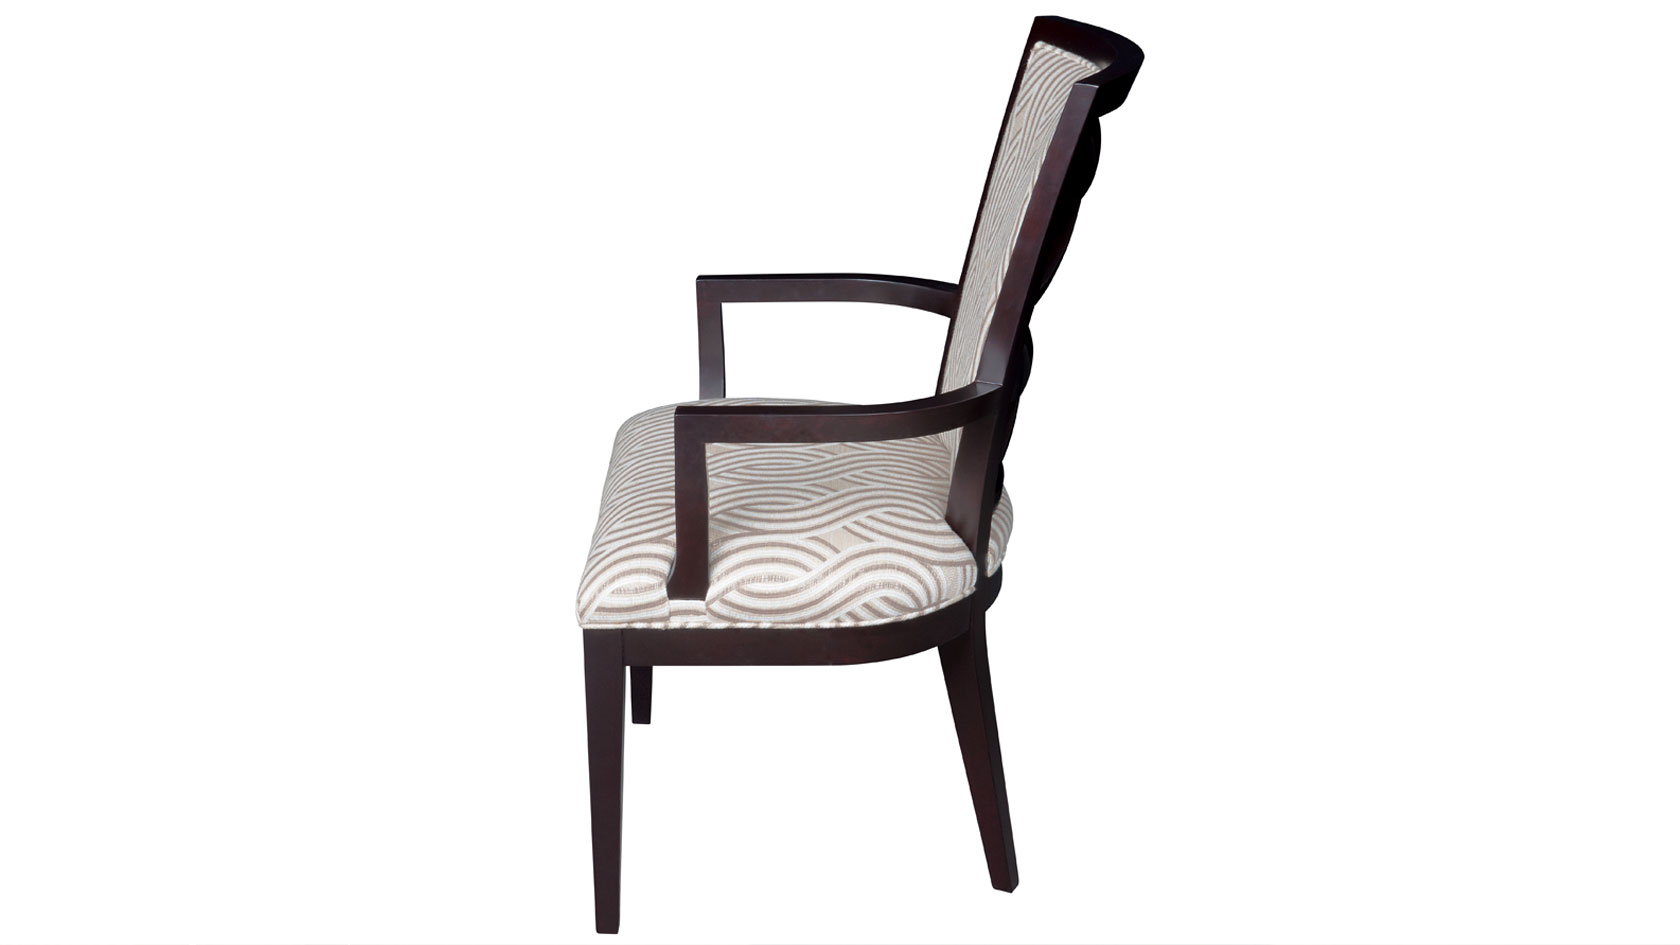 double x back chairs king chair outdoor furniture plush home carlisle dining arm